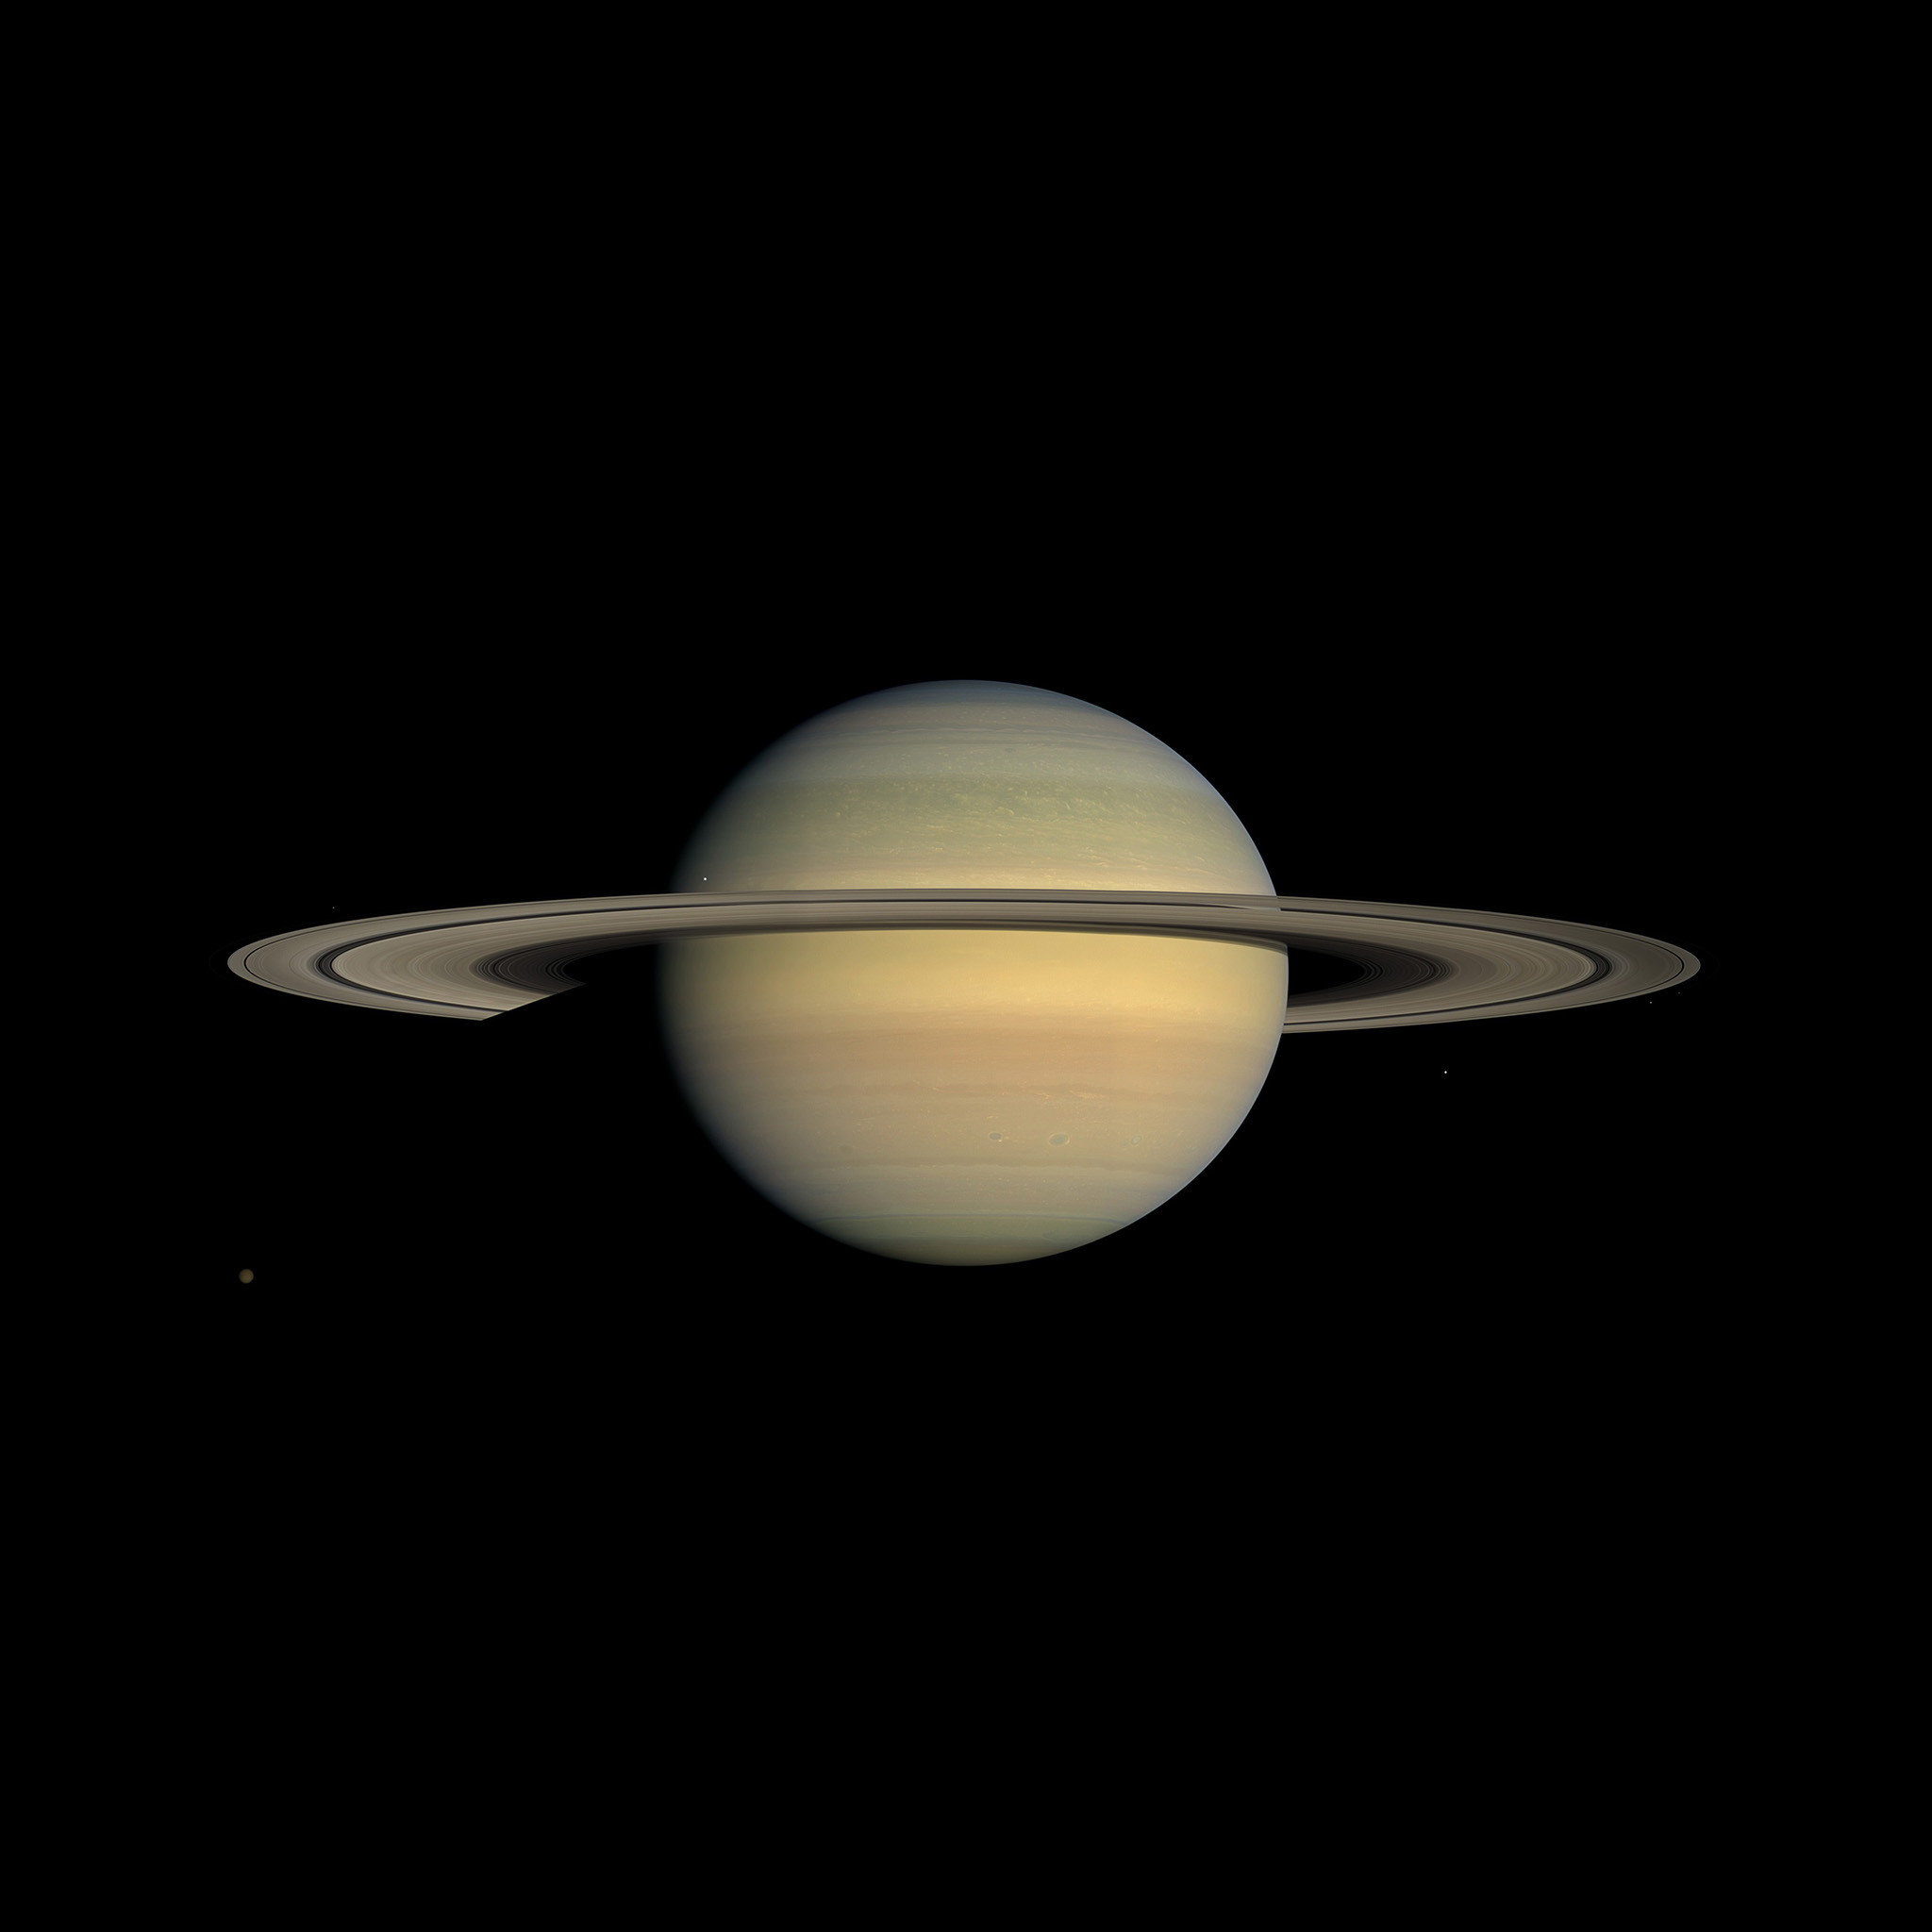 saturn essay Saturn is the sixth planet from the sun and the second-largest in the solar  system, after jupiter it is a gas giant with an average radius about nine times that  of.